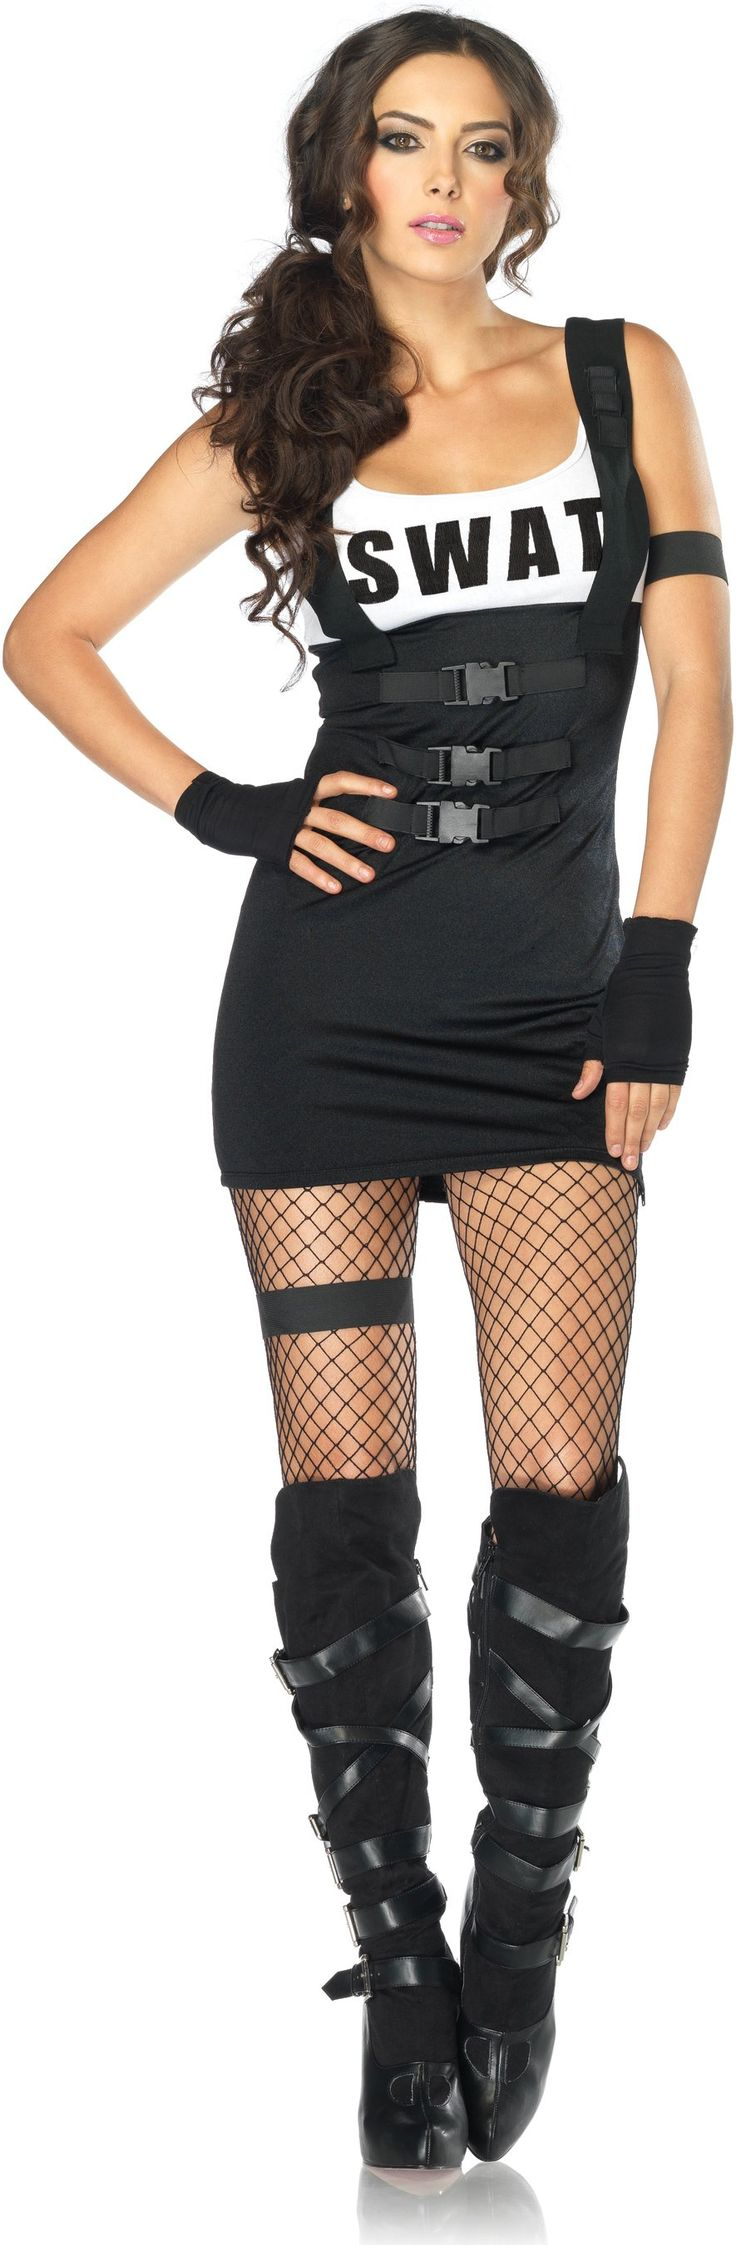 Sultry SWAT Officer Adult Costume from BuyCostumes.com